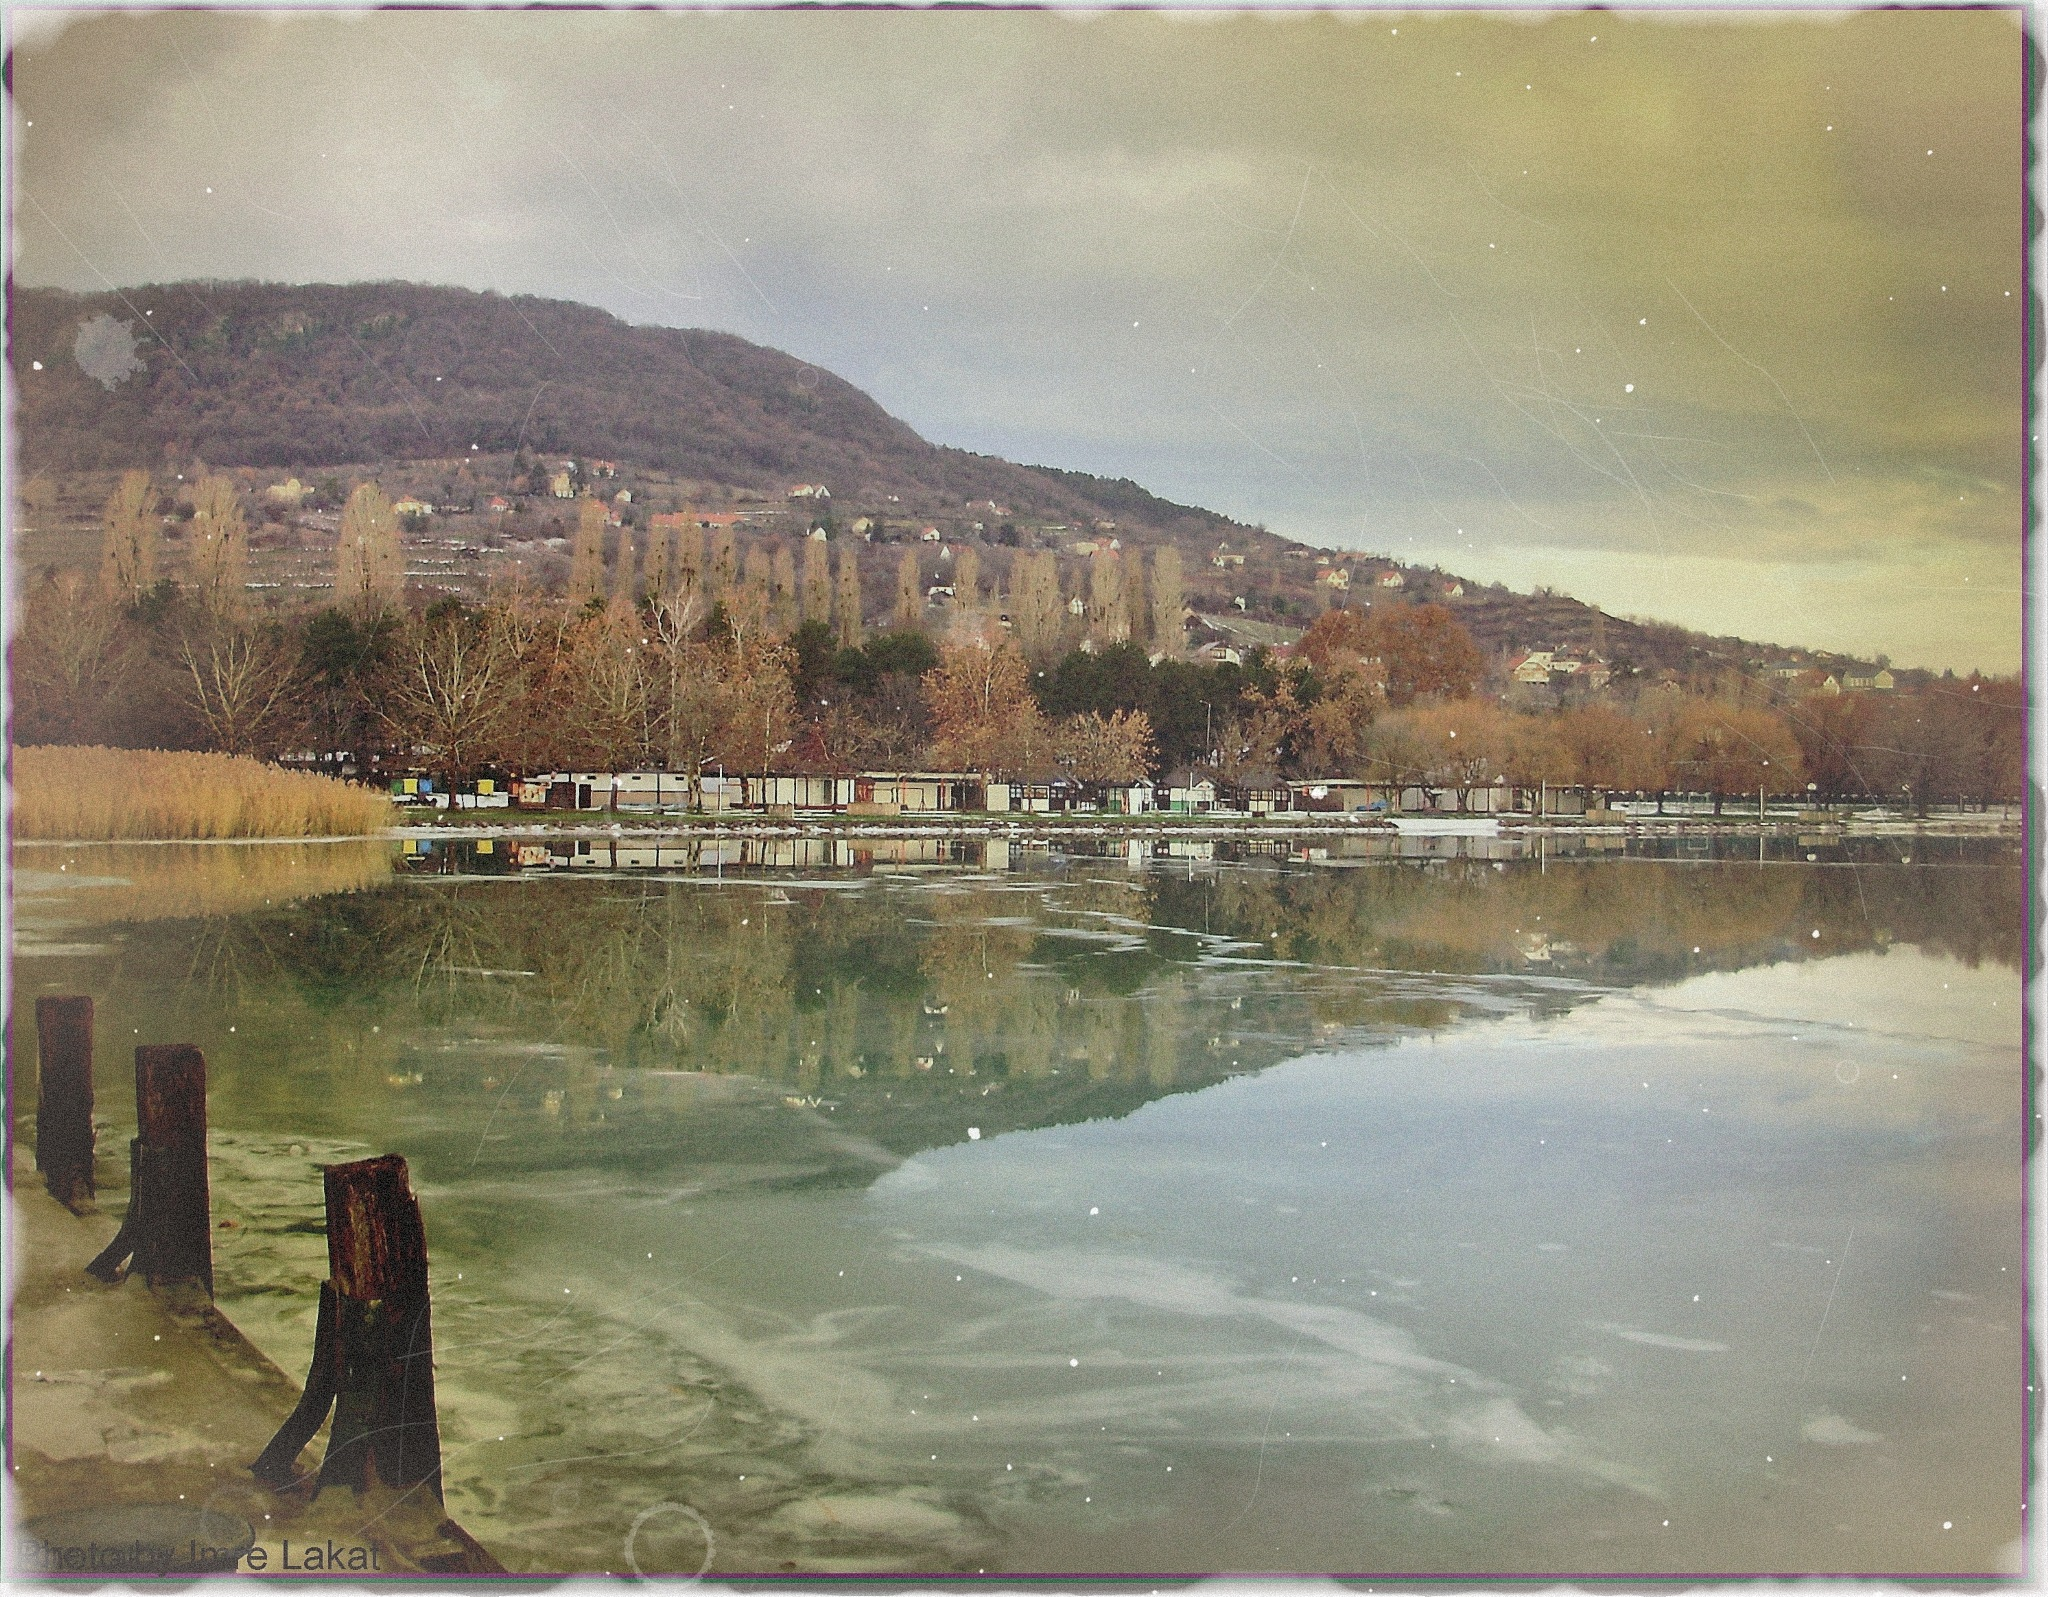 ...Ice's and water's, Badacsony harbour  by Imre Lakat